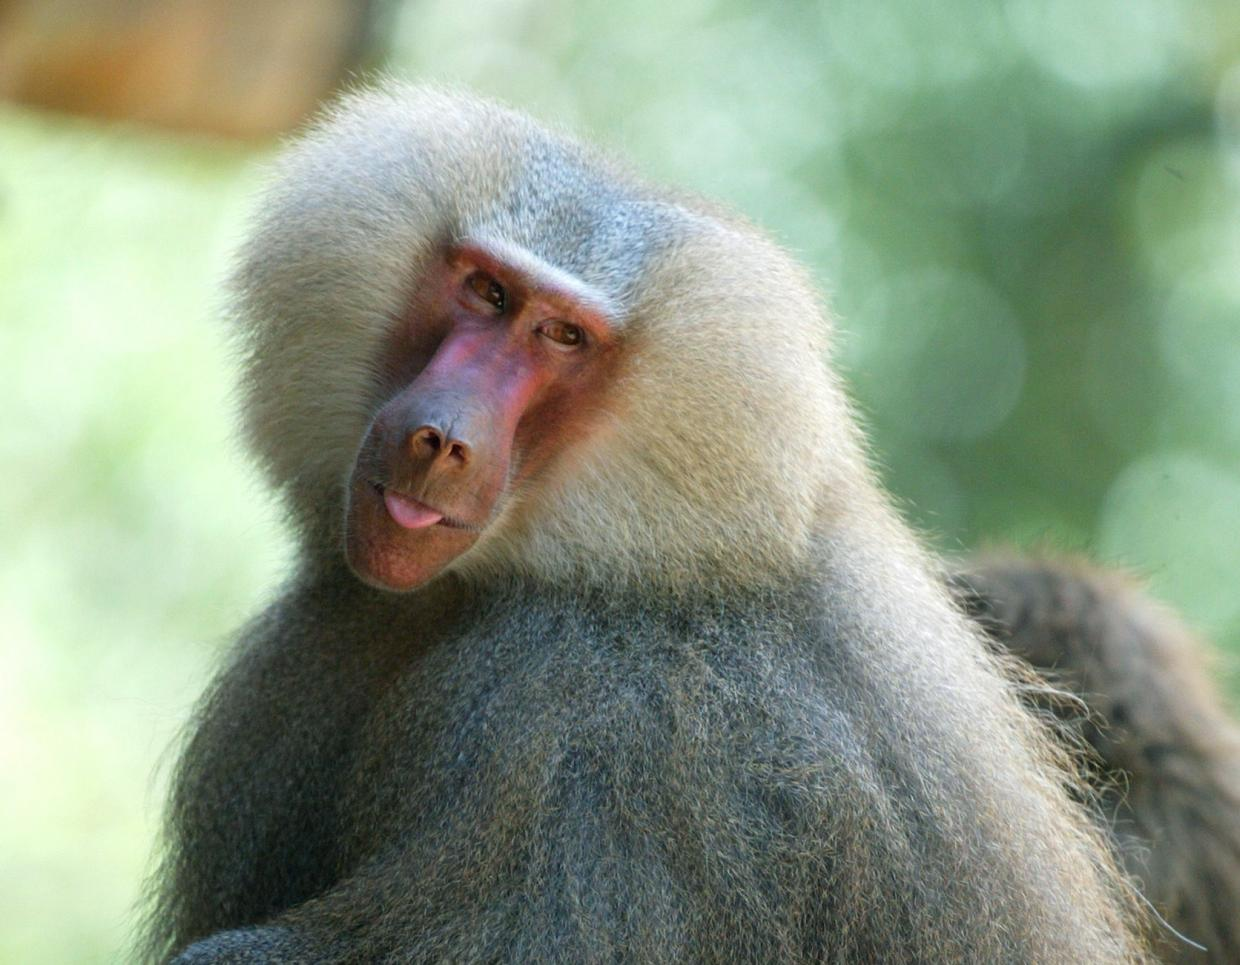 Pig heart operates in baboon for 2 years